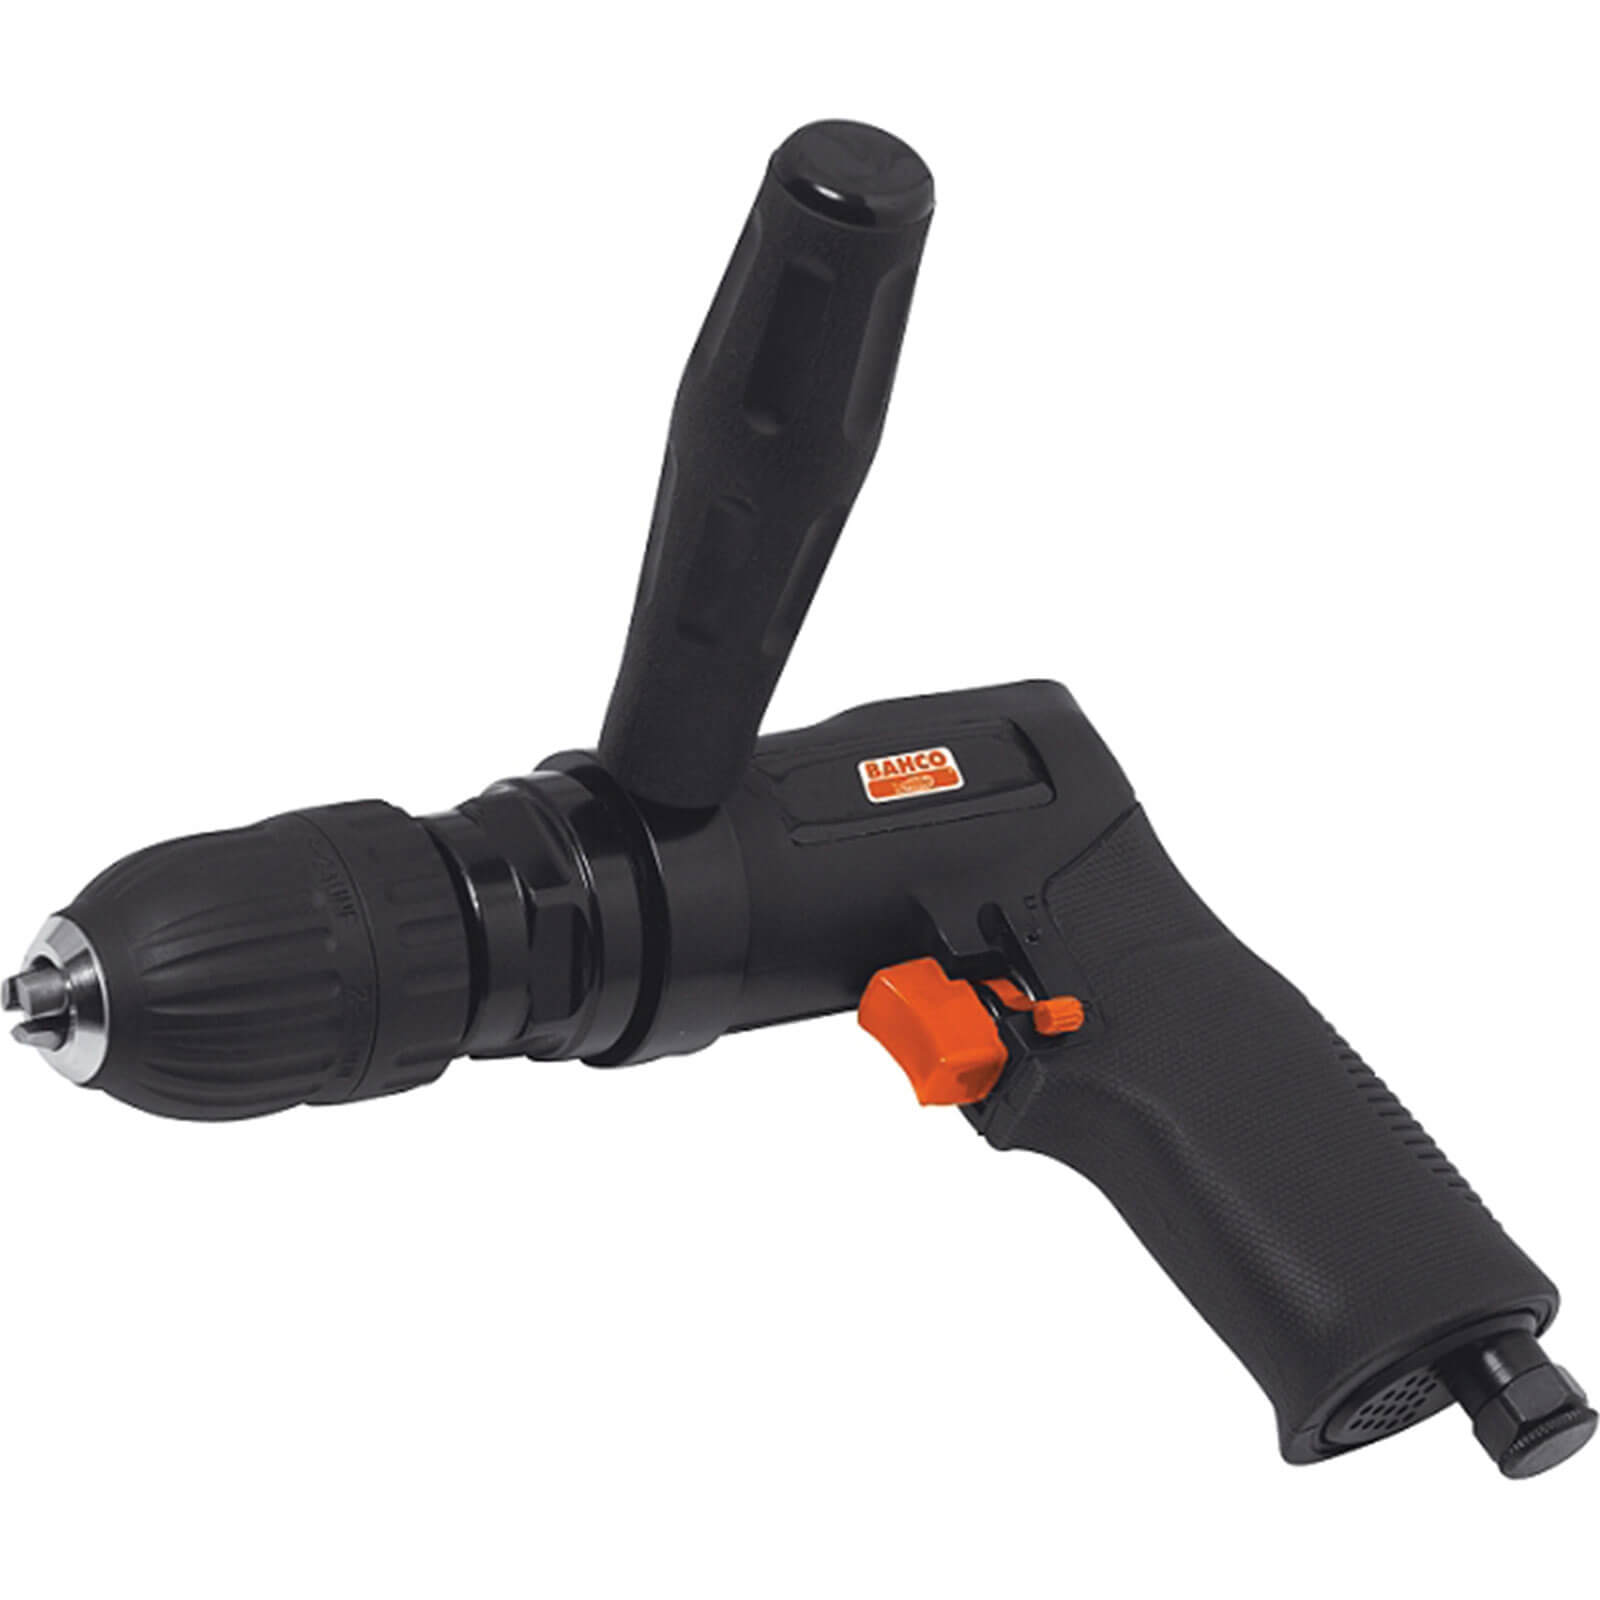 Bahco BP825 Reversible Air Drill with 13mm Quick Chuck 6.3cfm